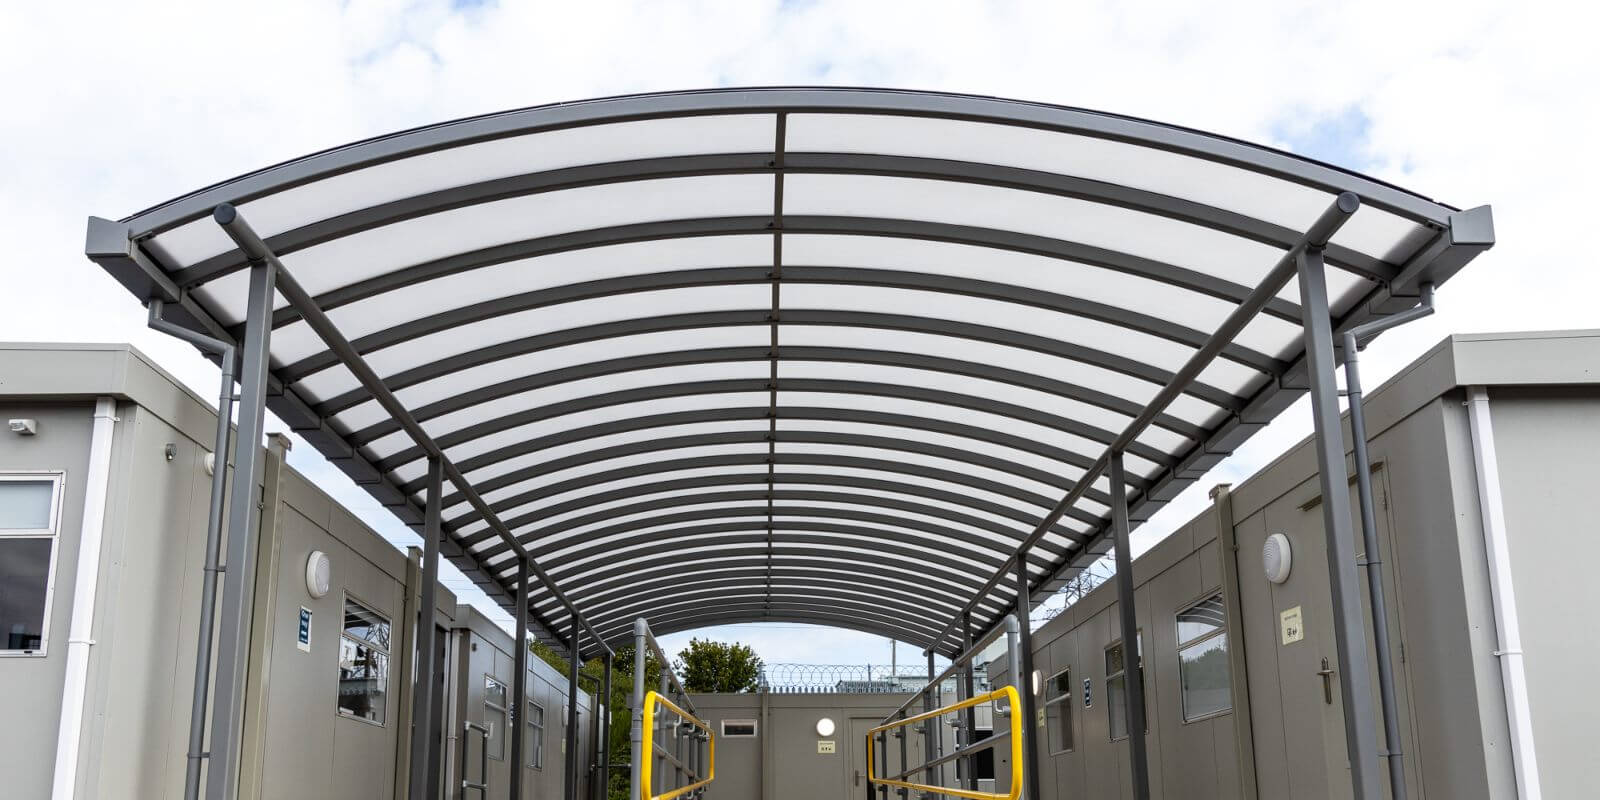 Covered walkway canopy we made for Dorset Waste Centre